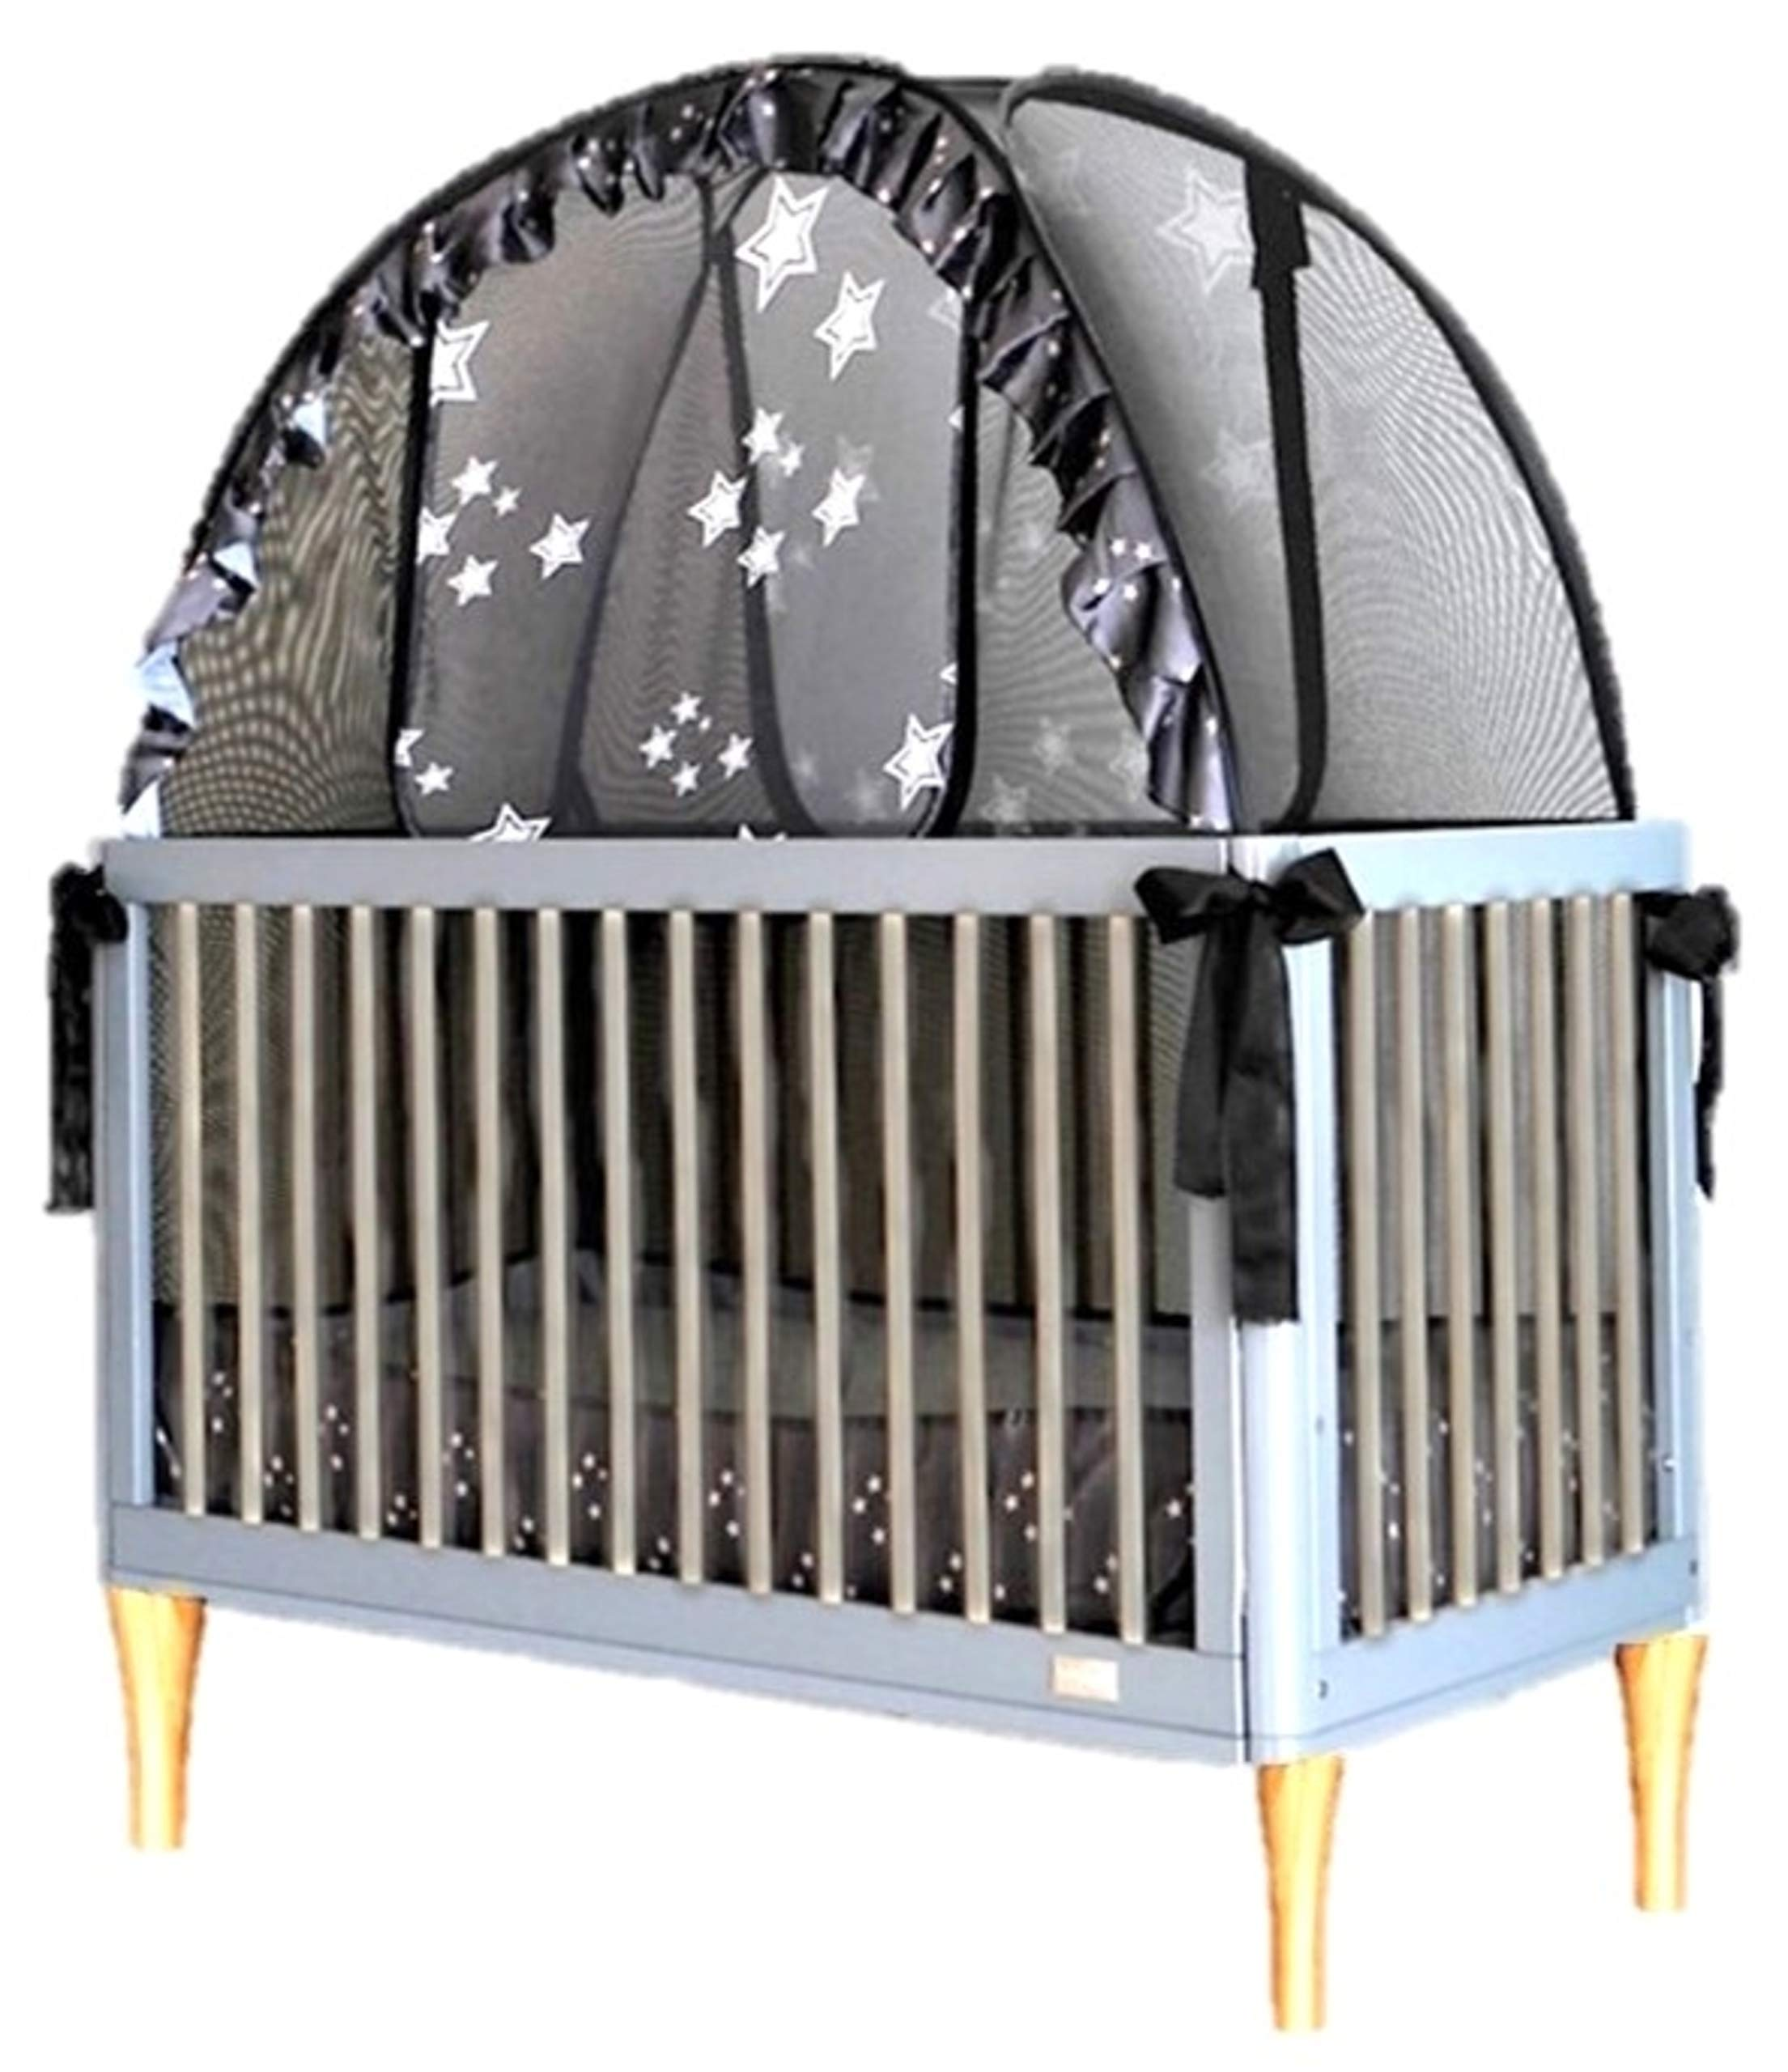 Popup Crib Safety Tent Net Keeps Toddlers from Climbing Out of The Crib and so Much More